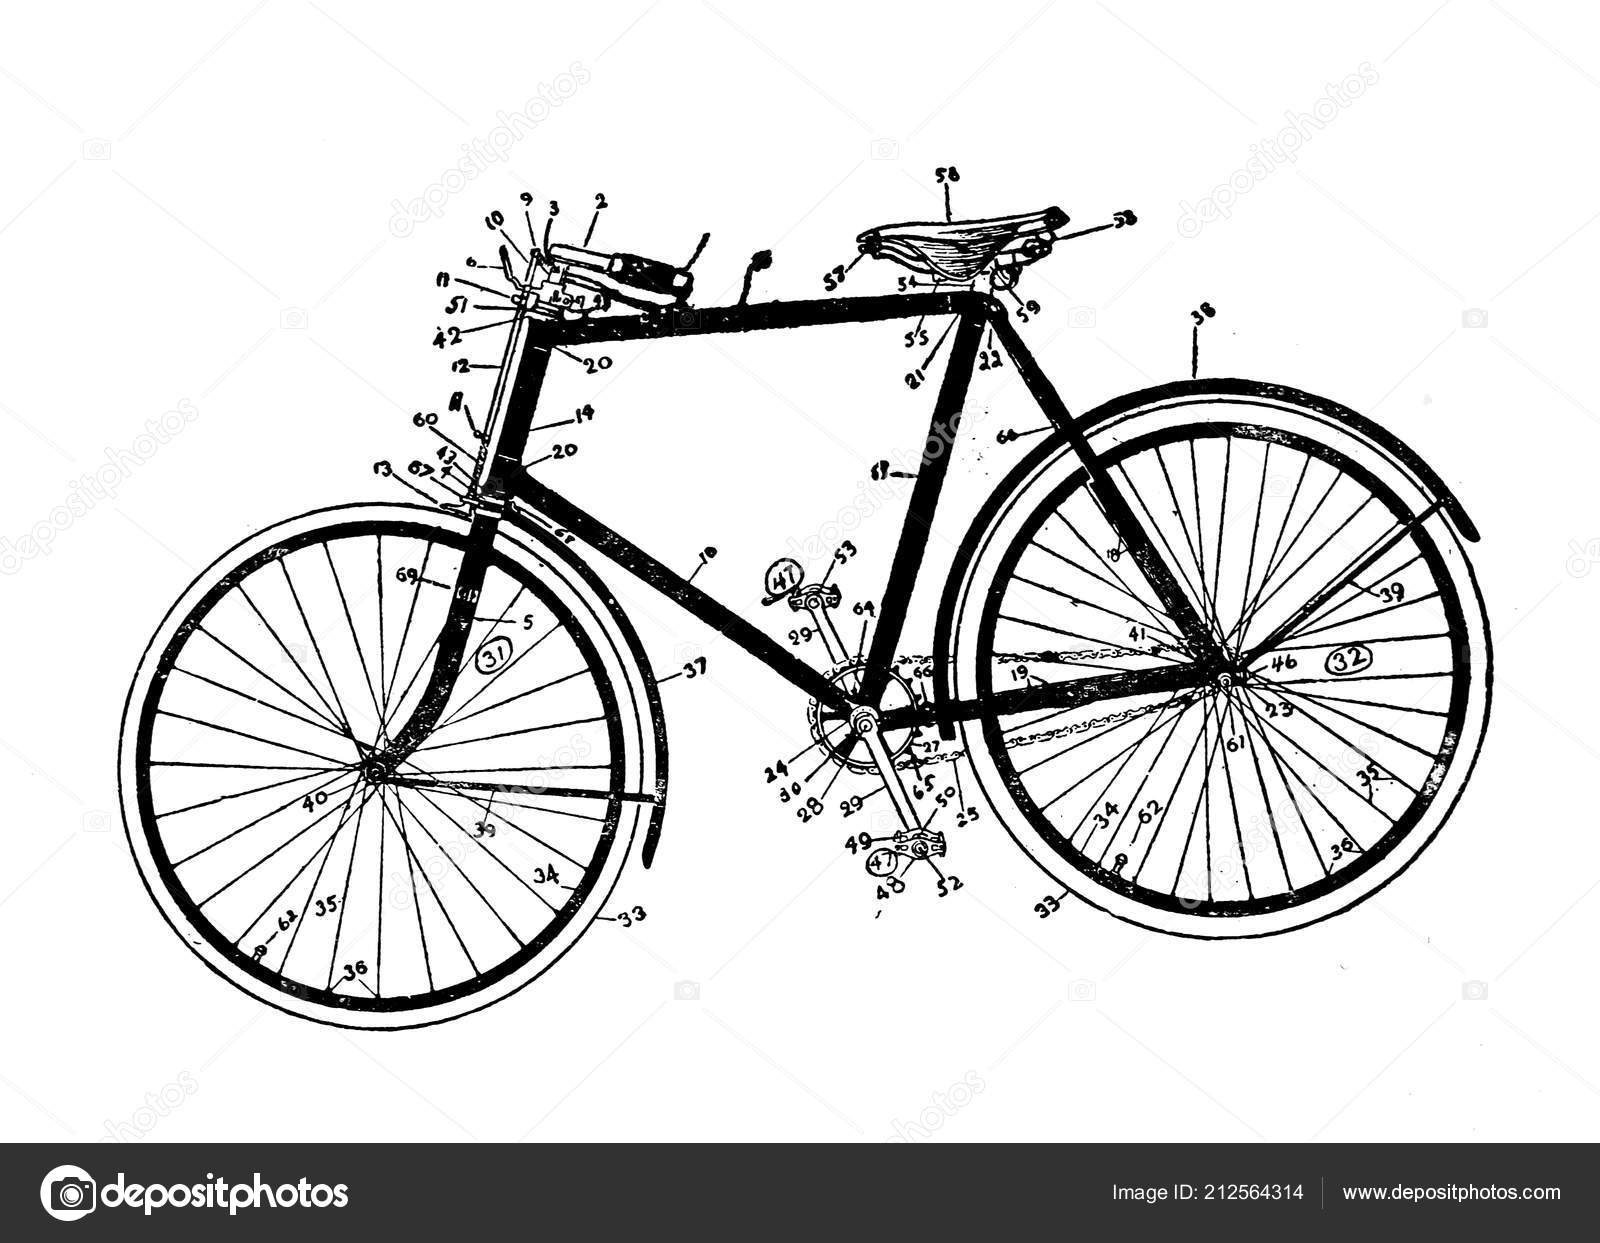 Ancienne Bicyclette illustration une bicyclette ancienne image — photographie ruskpp